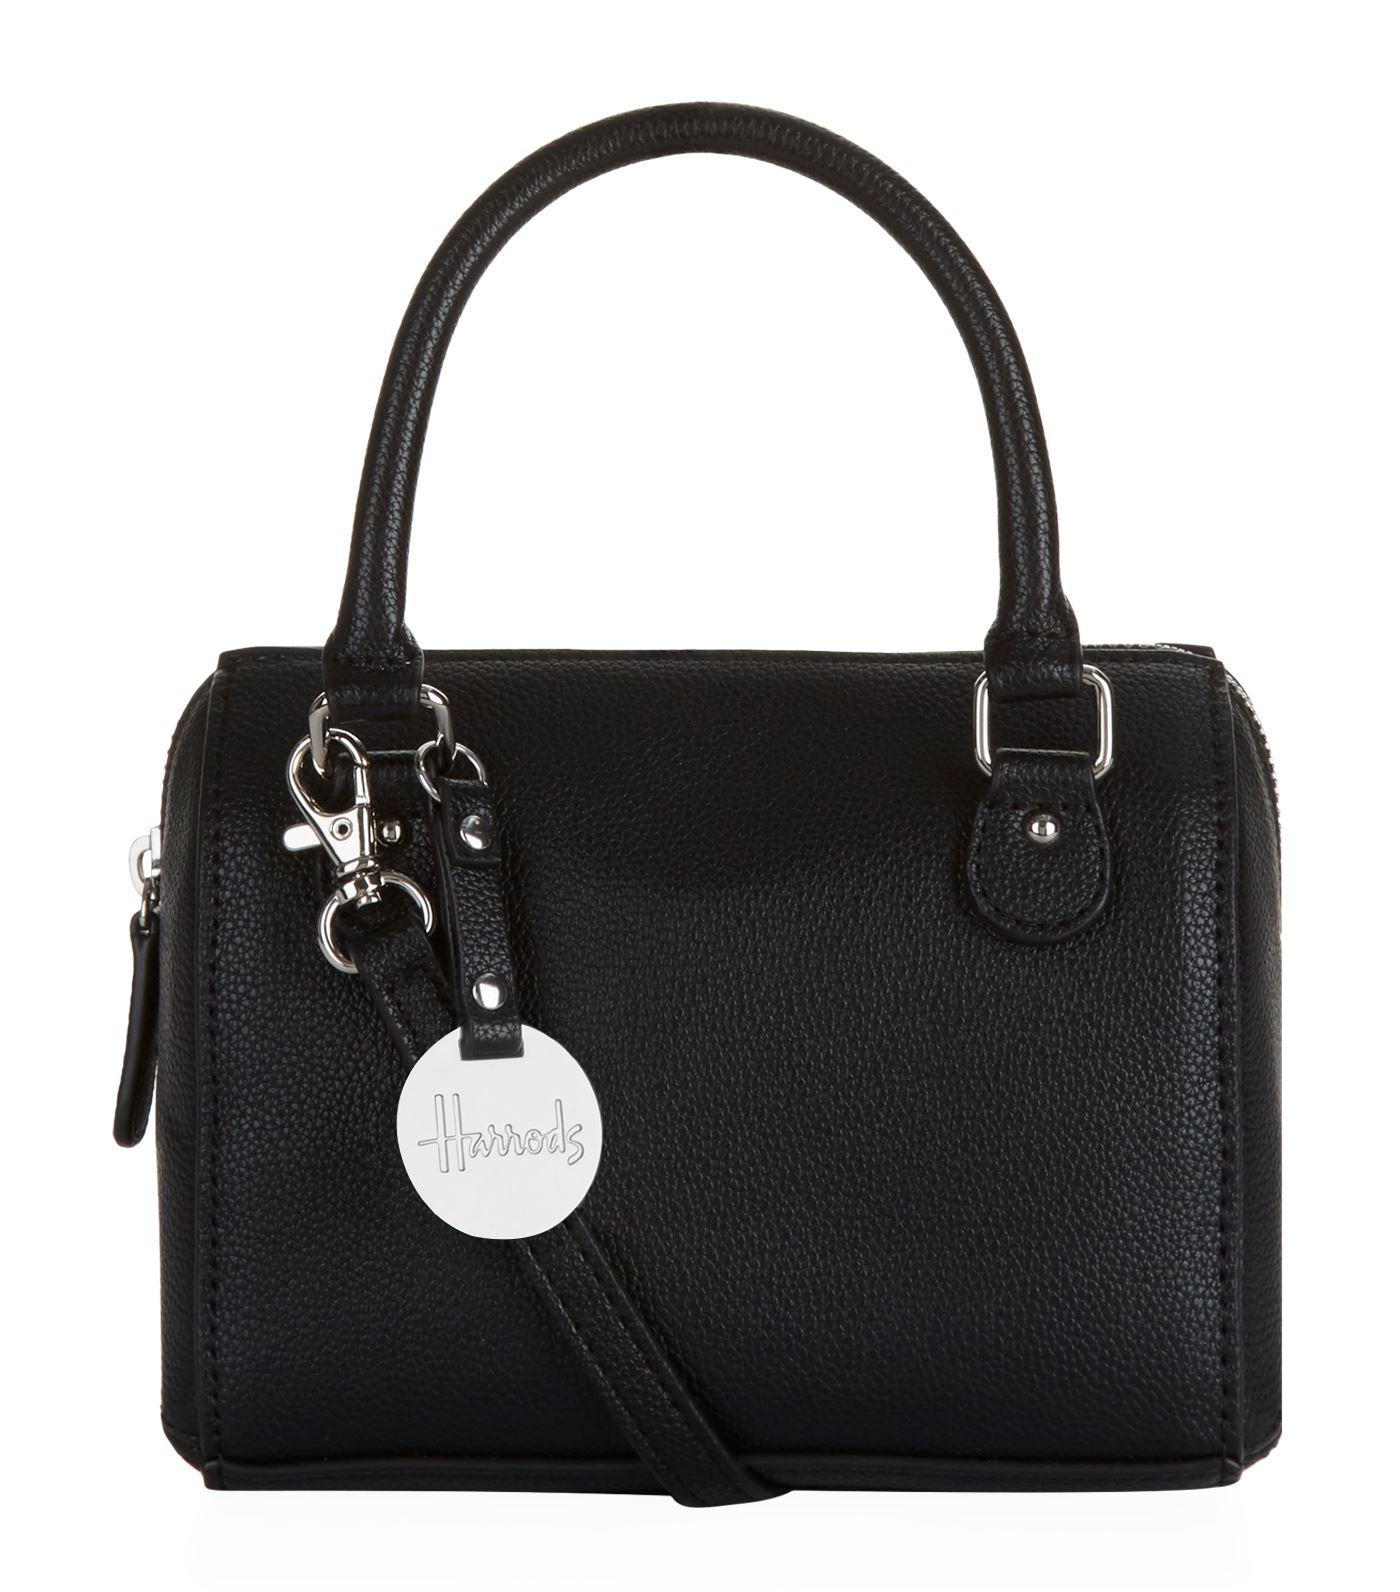 cbfce36d4152 Lyst - Harrods Micro Mini Barrel Bag in Black